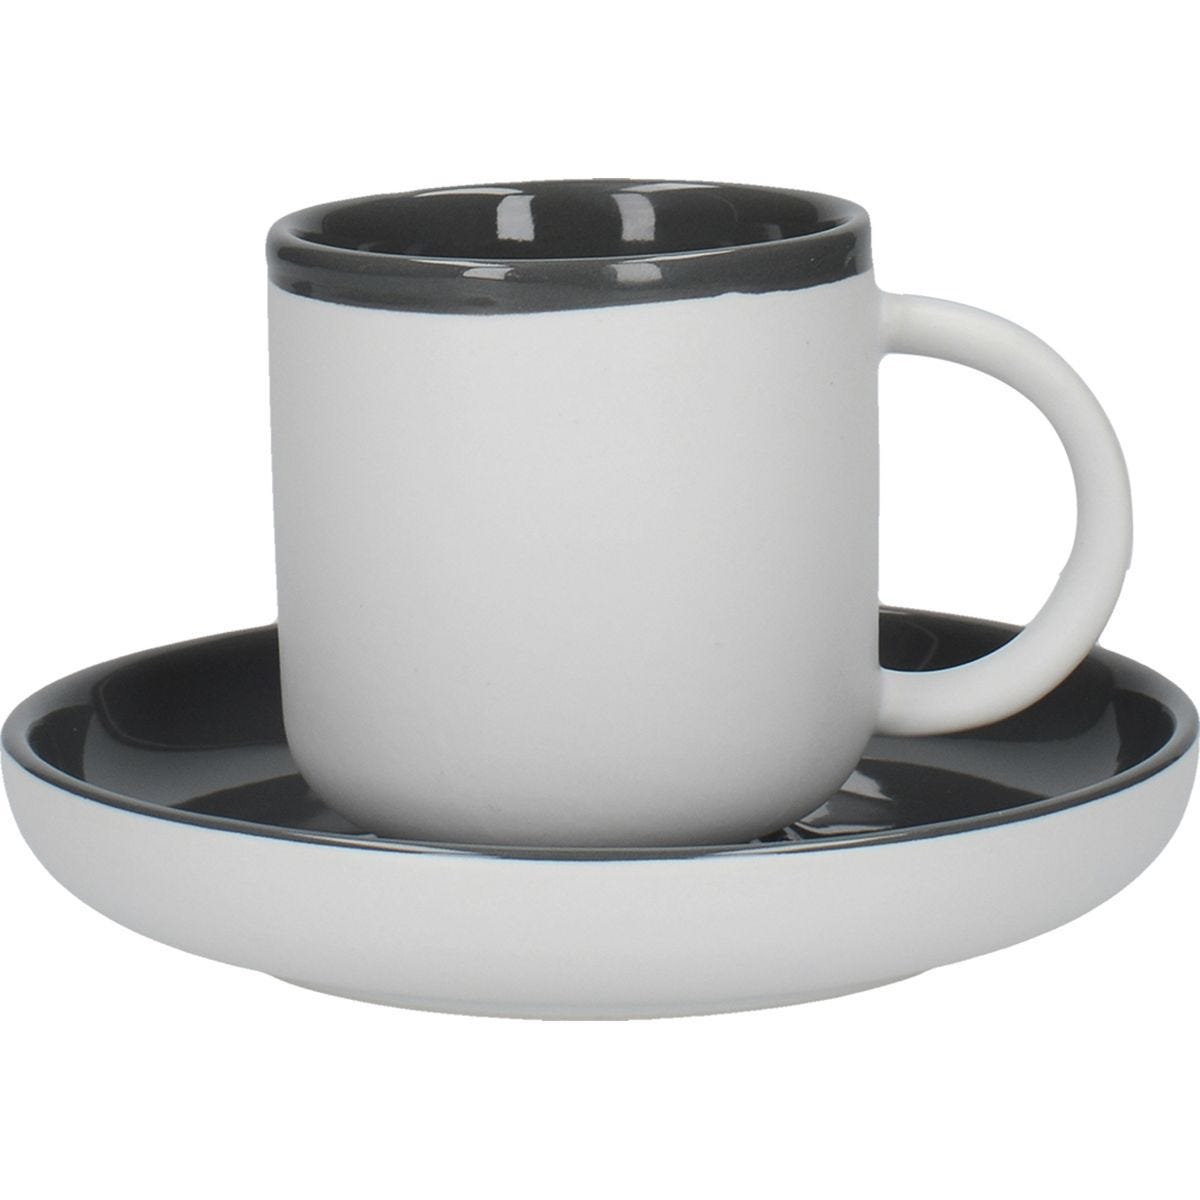 La Cafetiere Ceramic Barcelona Coffee Cup and Saucer Cool Grey 300ml